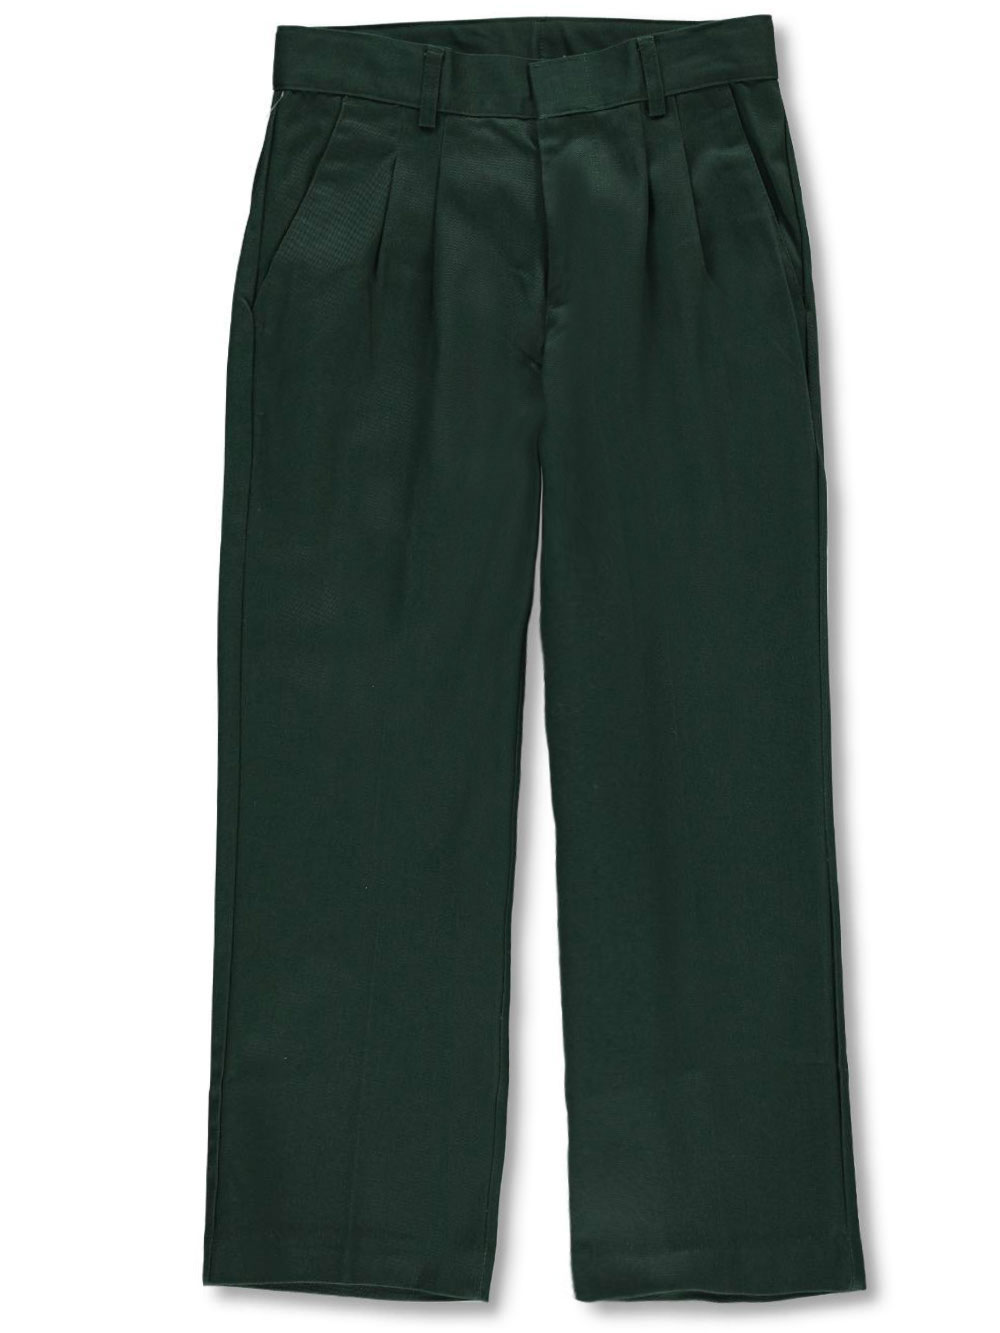 Universal Boys/' Pleated Front Pants